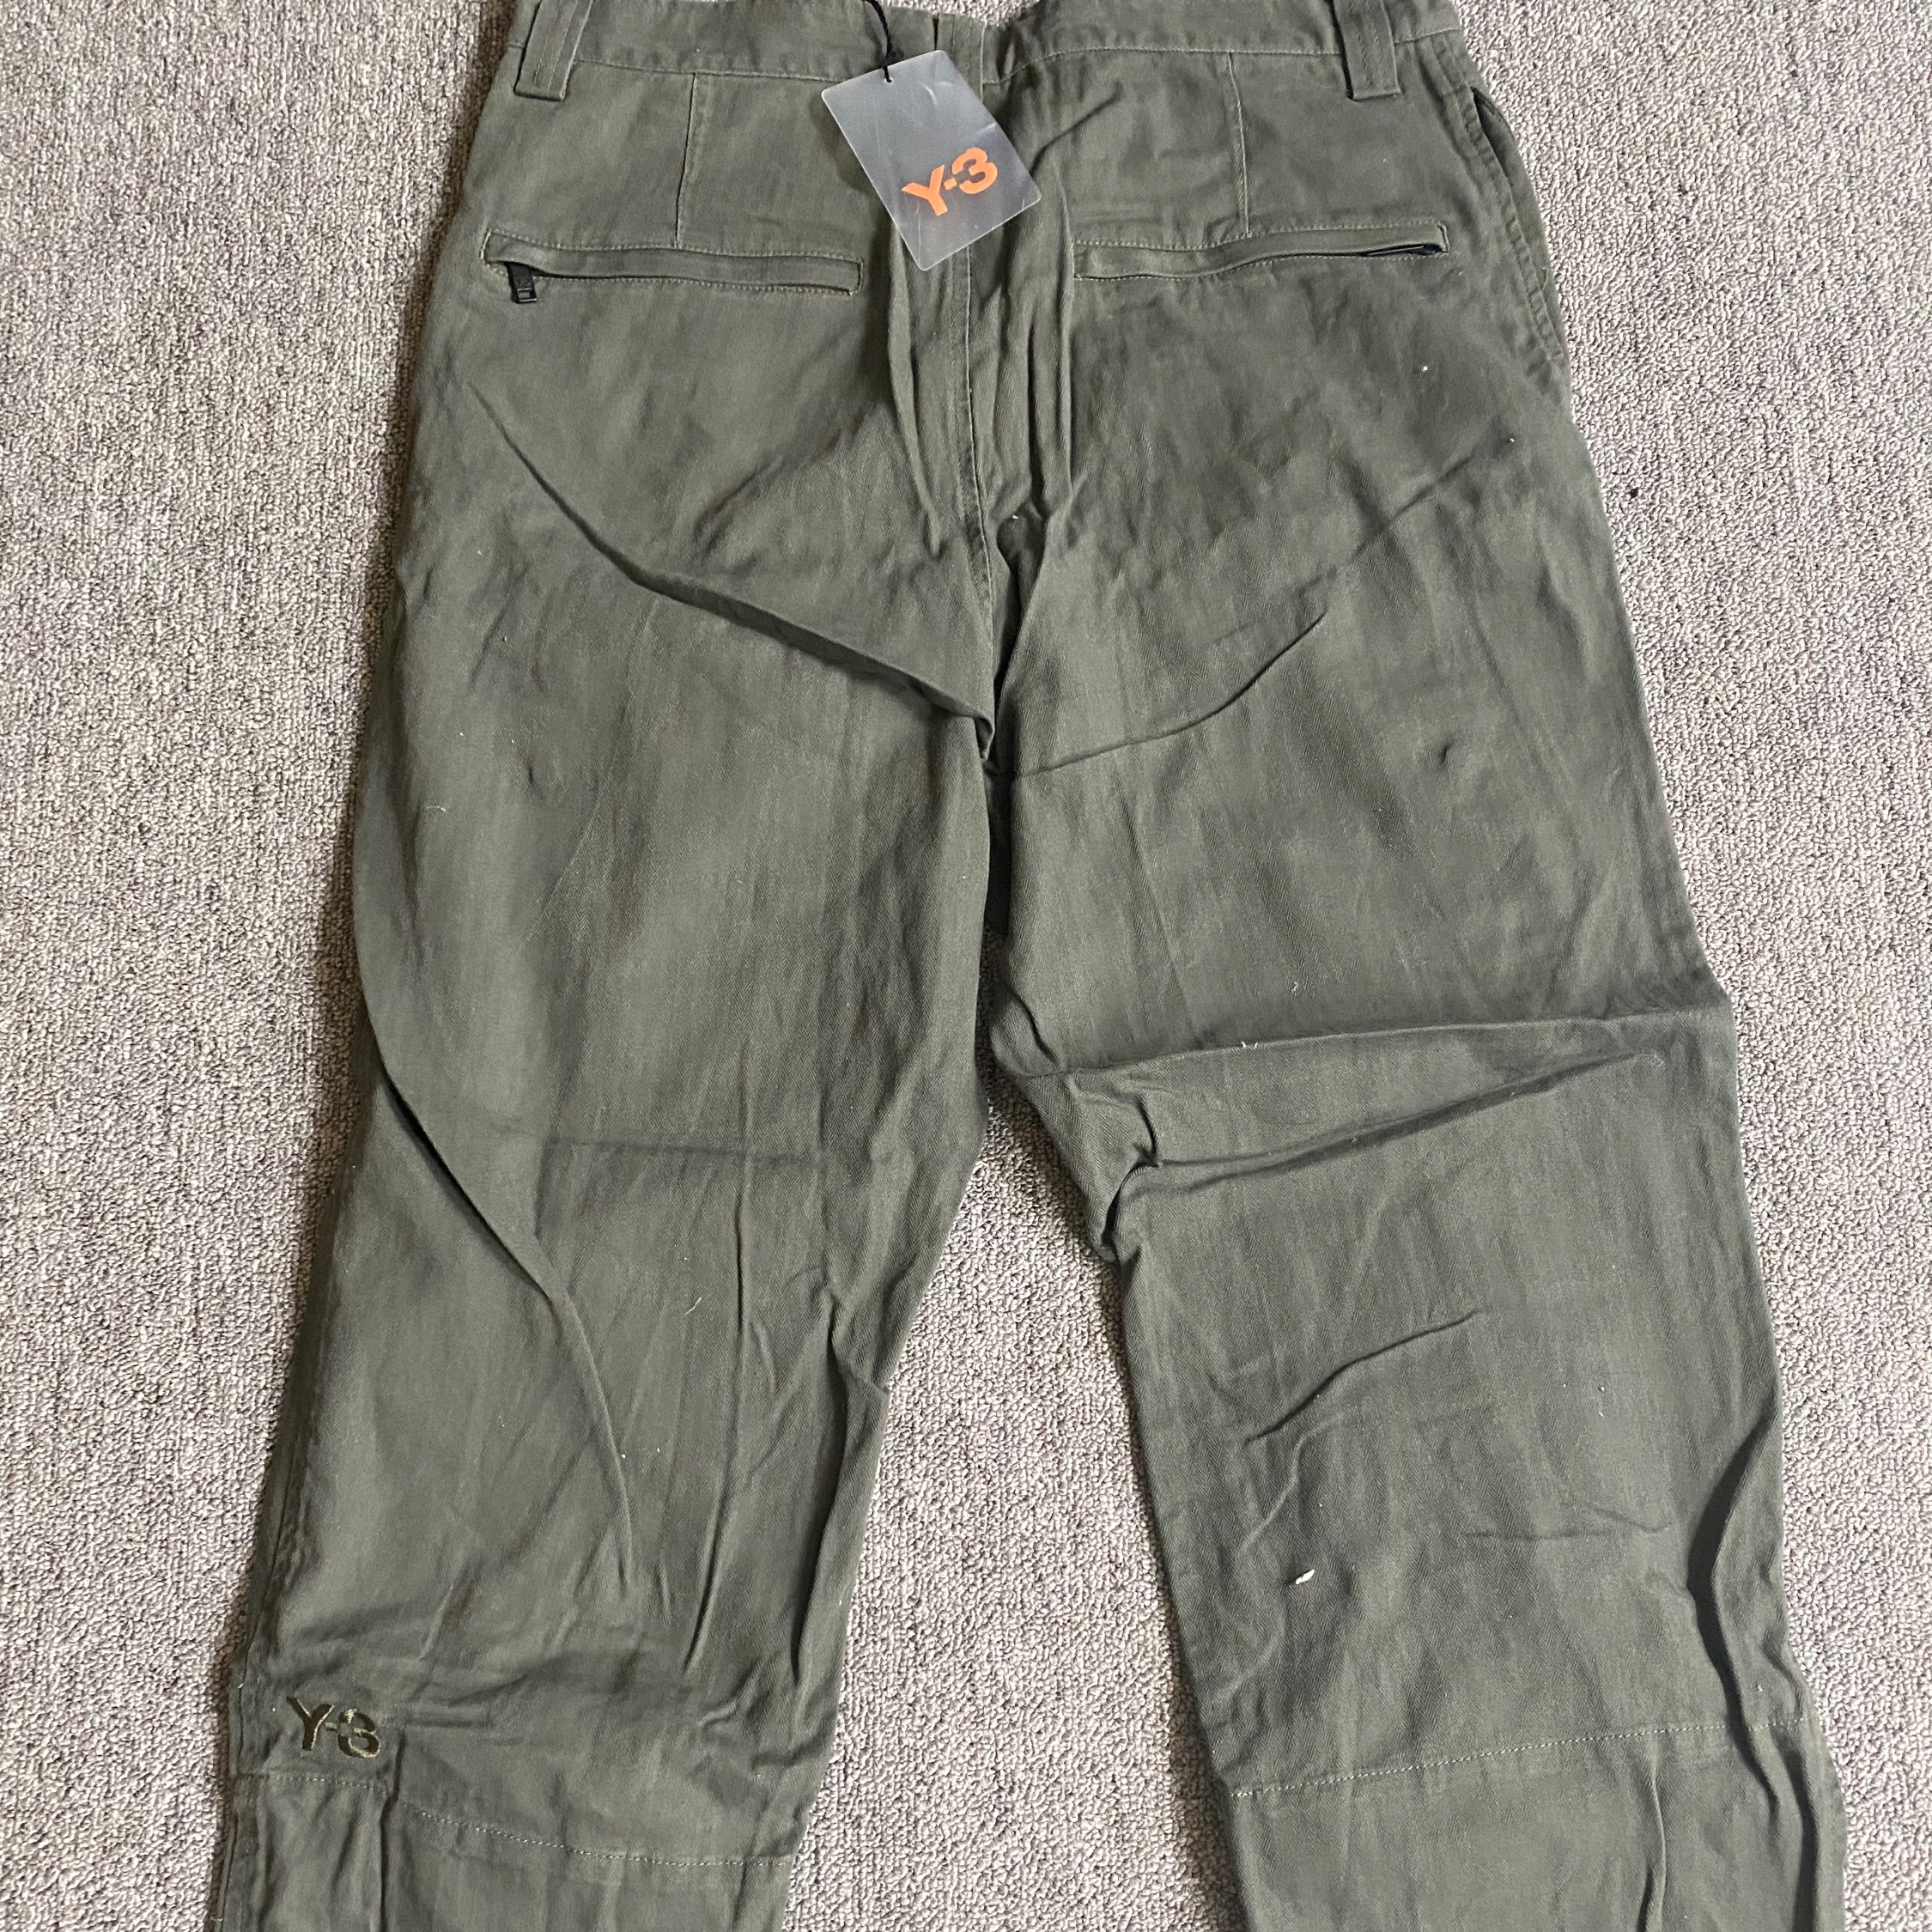 X Adidas Olive Green Cargo Pants Size